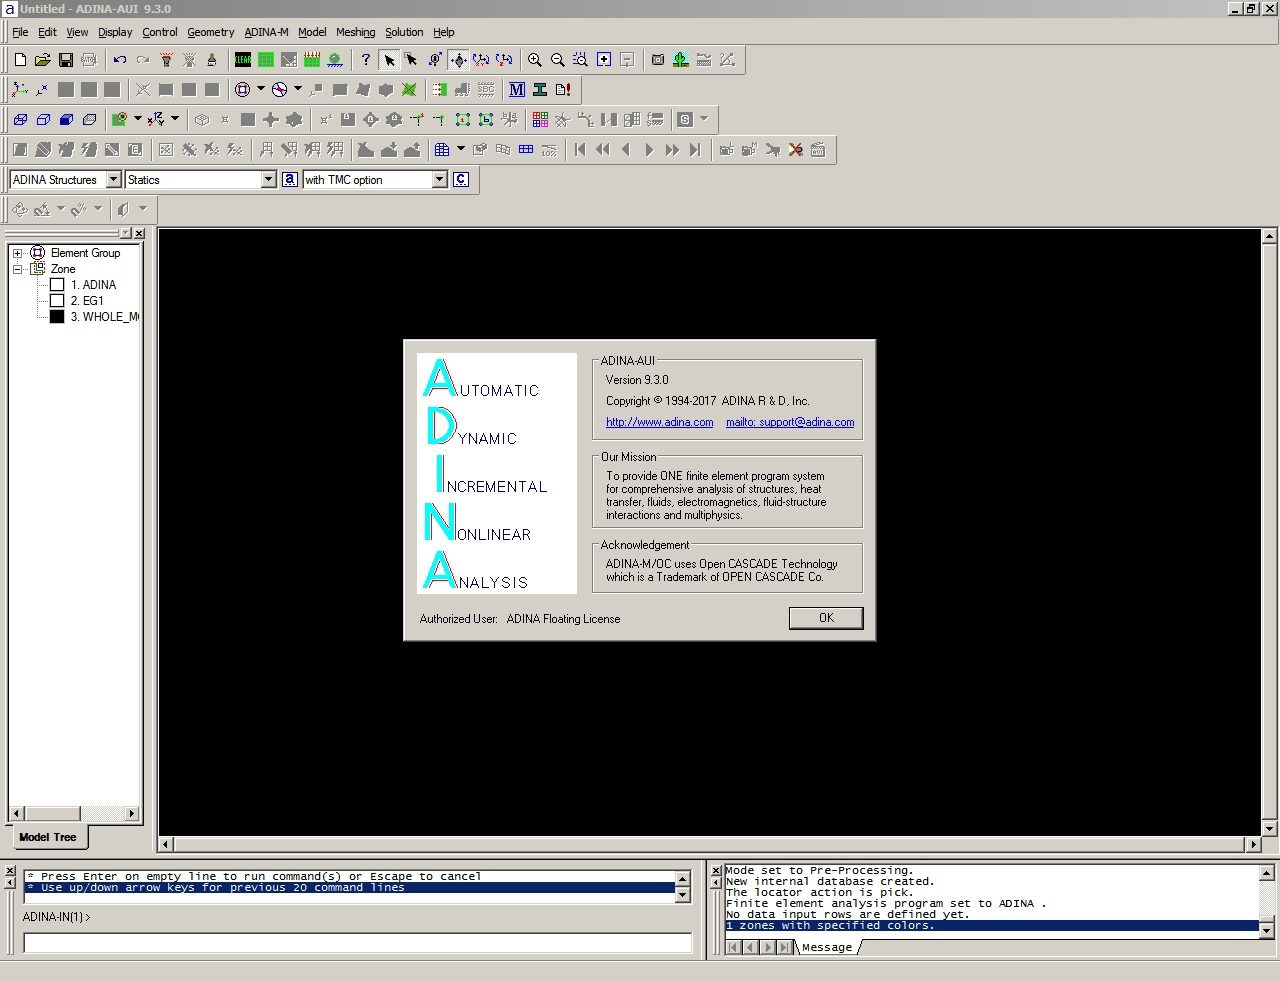 Working with ADINA System 9.3.0 full